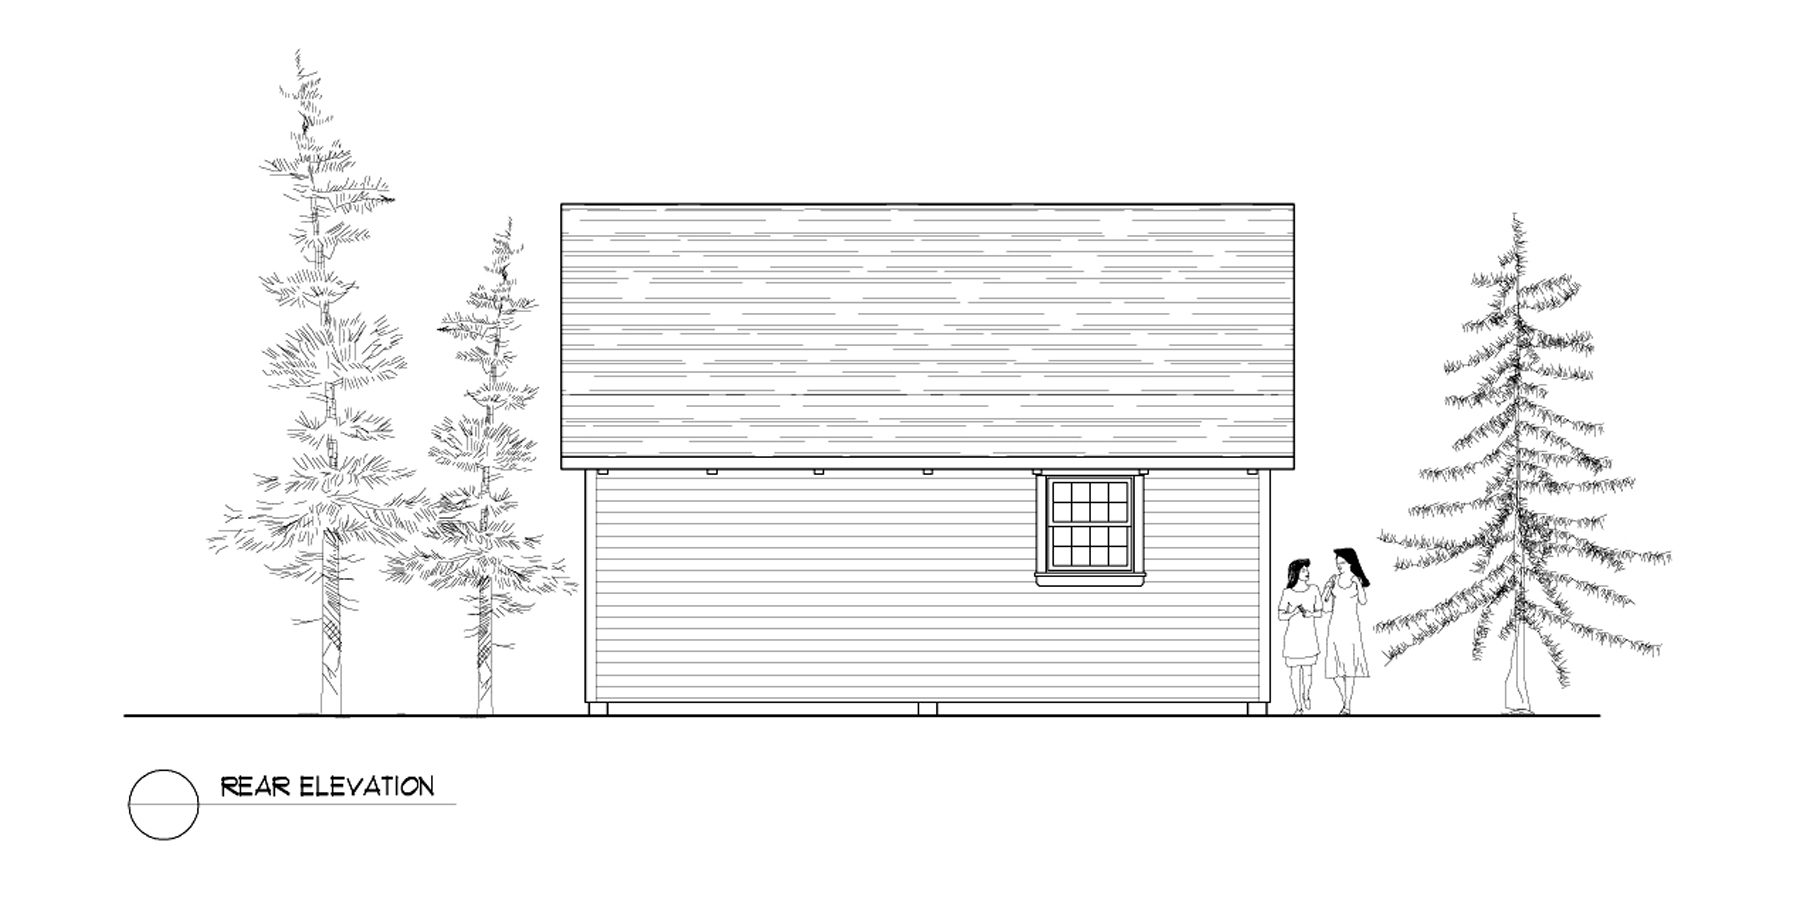 Normerica Timber Frames, House Plan, The Dillon 2254, Rear Elevation